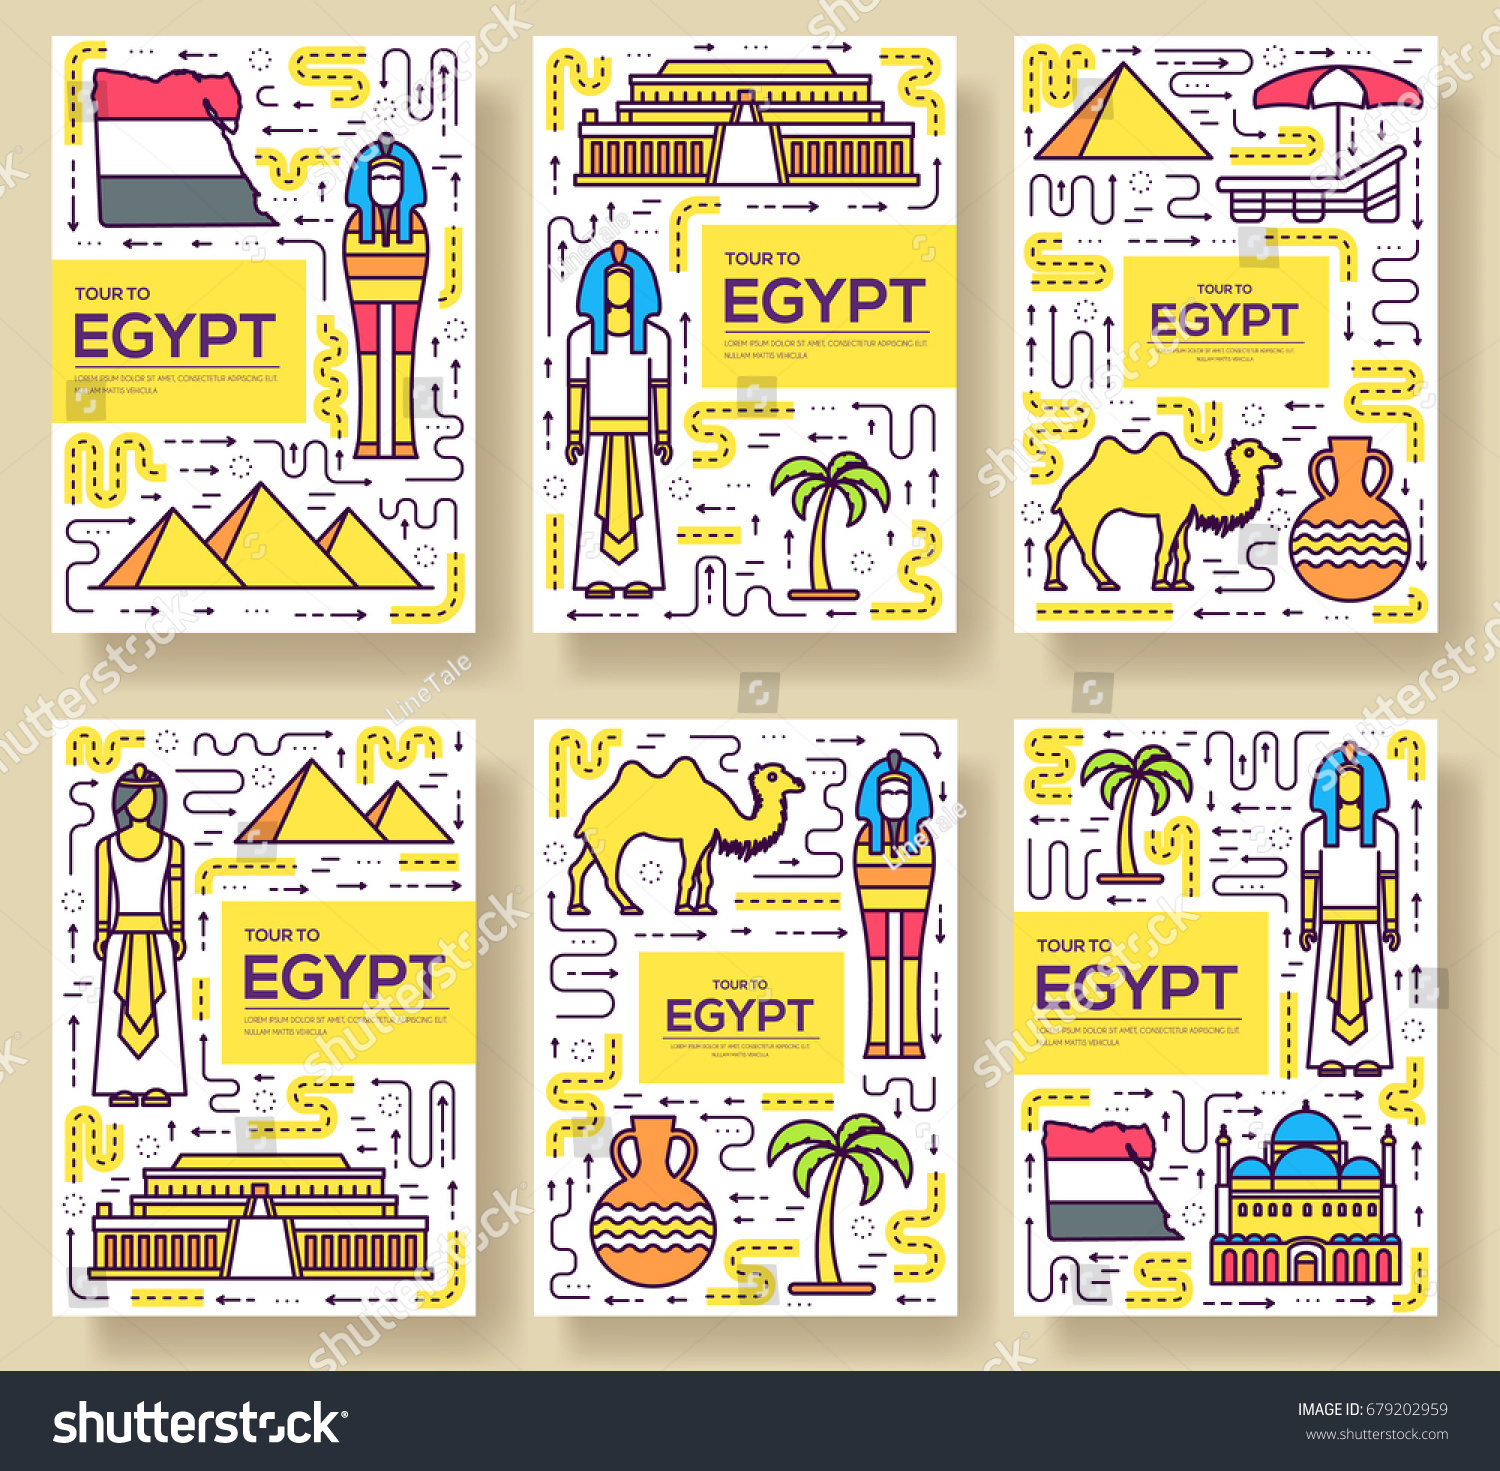 Country egypt travel vacation guidevector brochure stock for Egypt brochure templates